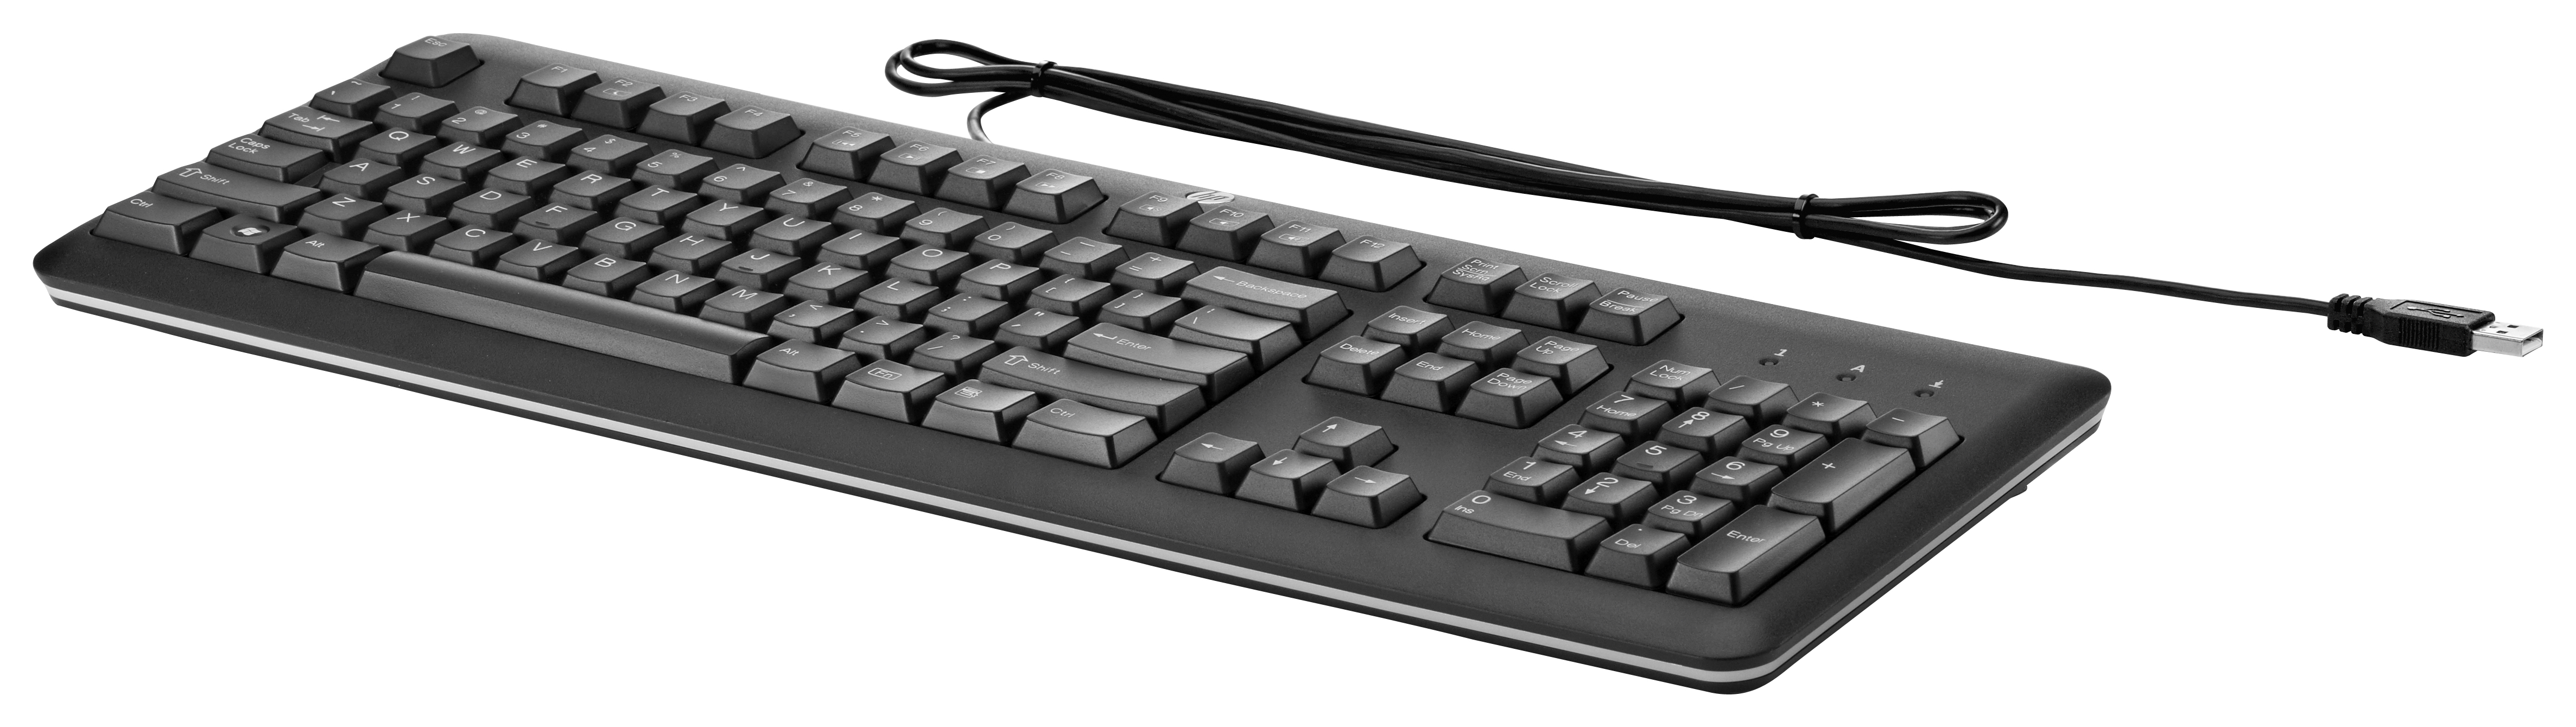 HP Keyboard English Black **New Retail** QY776AA#ABU - eet01